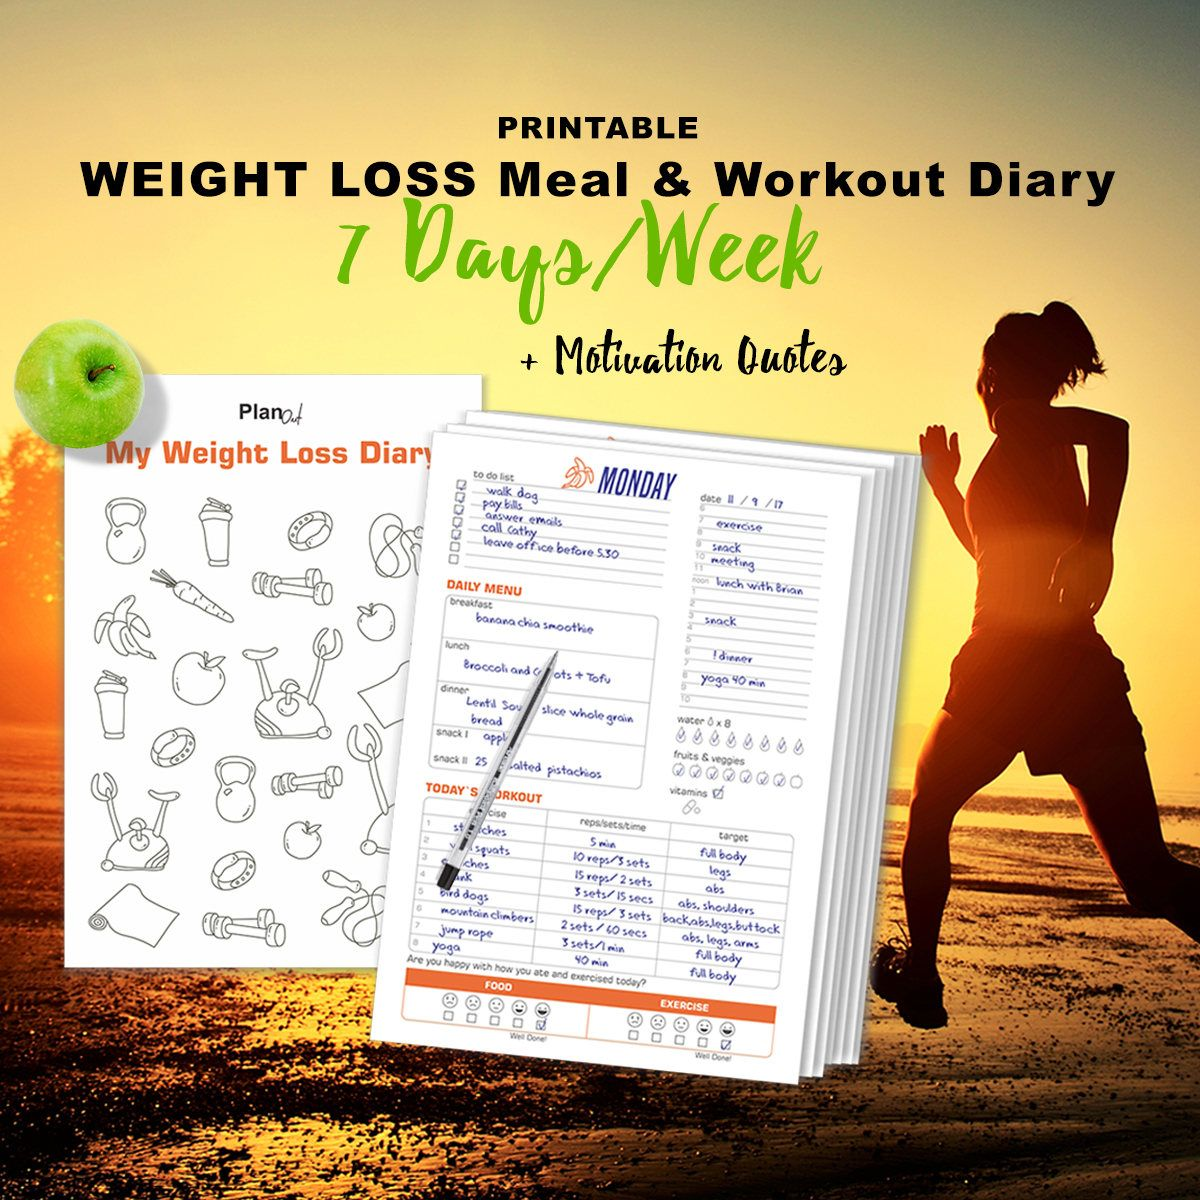 Daily Meal u Workout Diary Weight Loss Planner Habit  Health